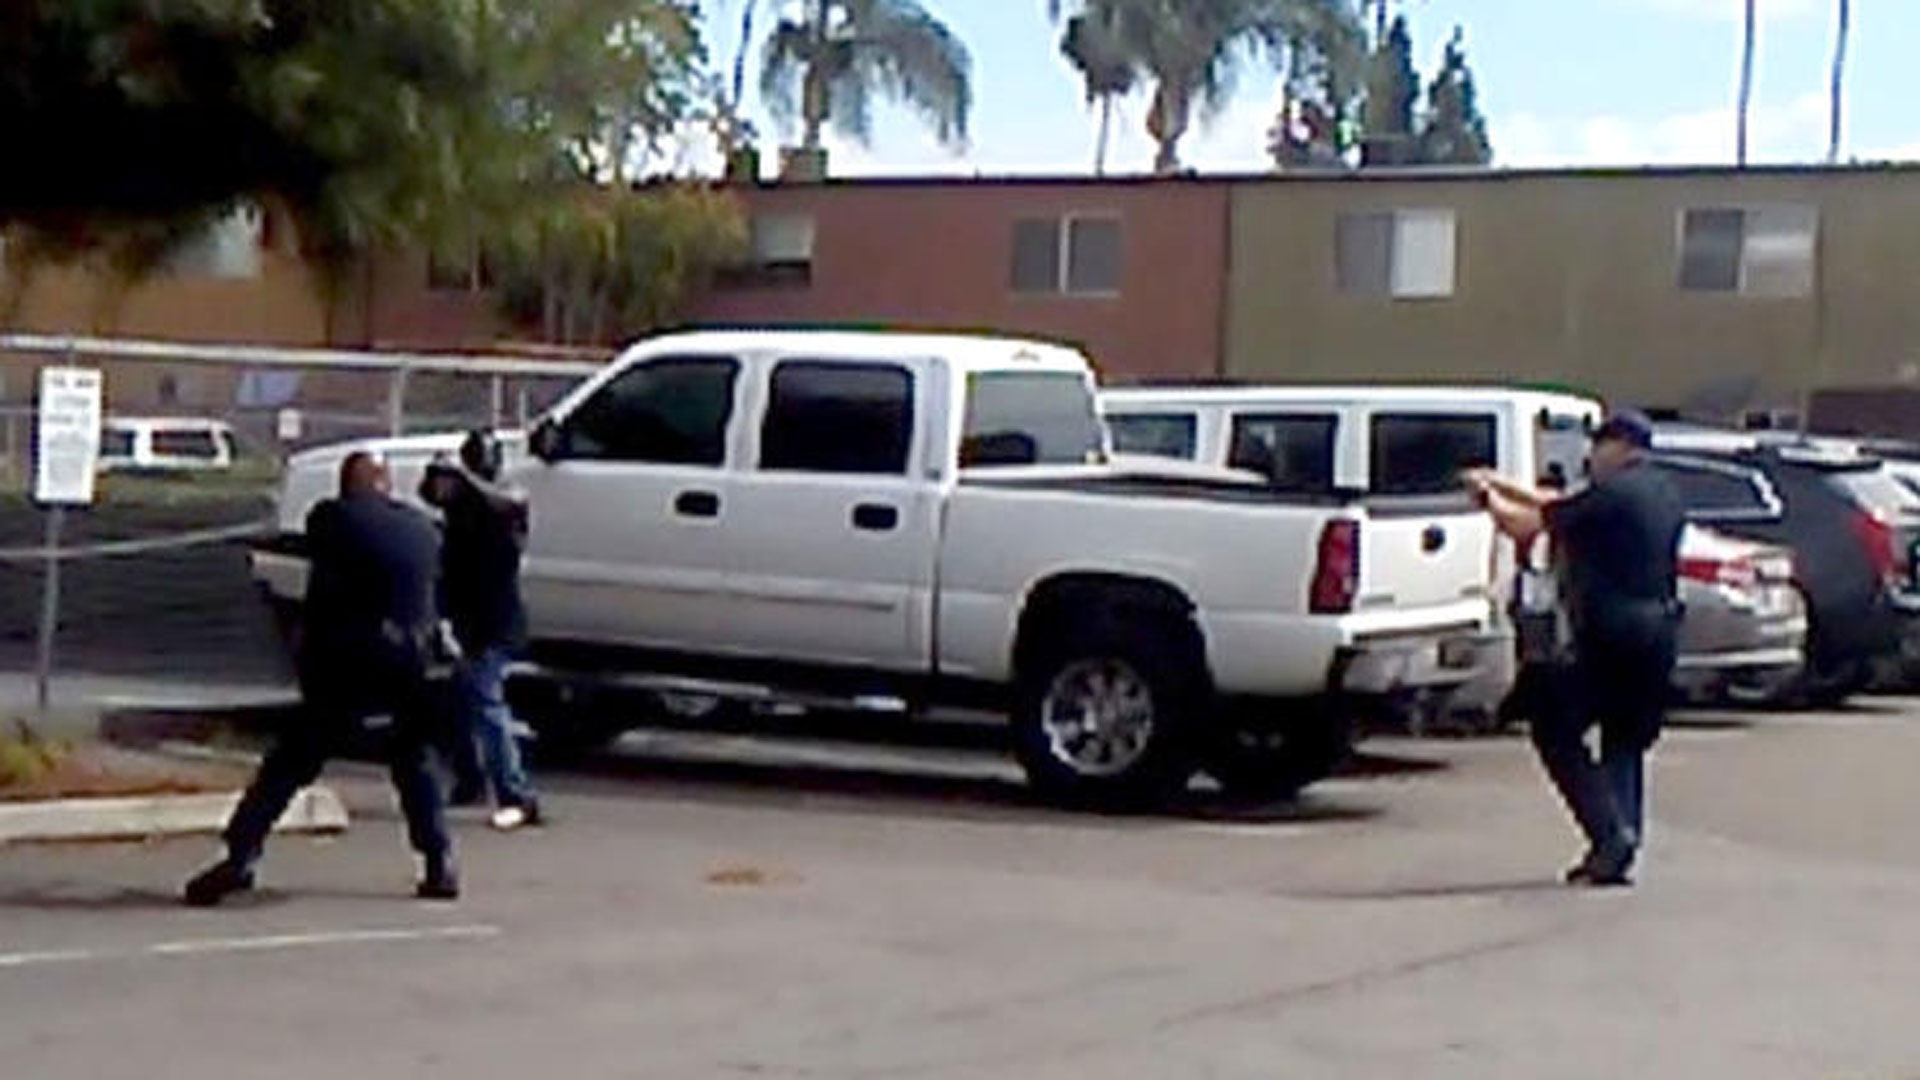 A cellphone video showed a deadly confrontation between El Cajon police officers and a man whose sister says she told officers was mentally ill.